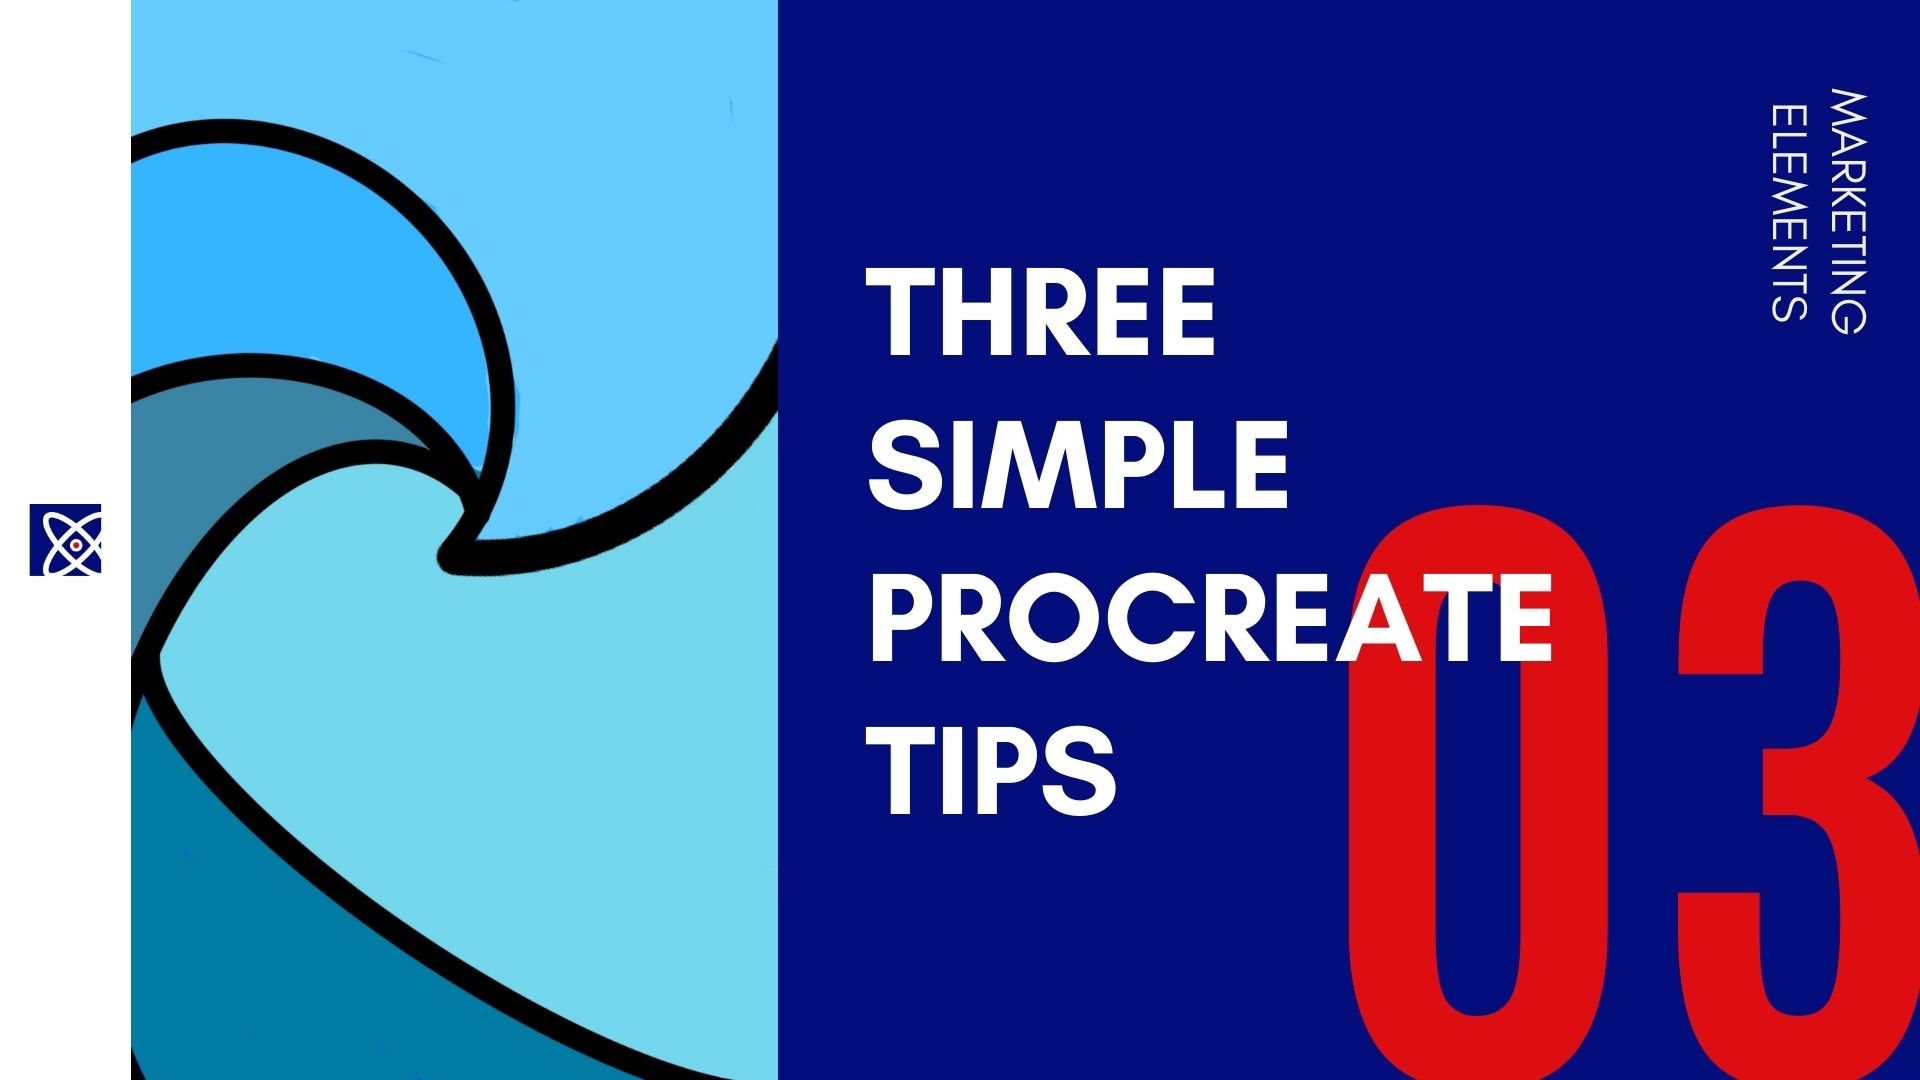 http://marketingelementsblog.com/2021/03/3-simple-procreate-tips/